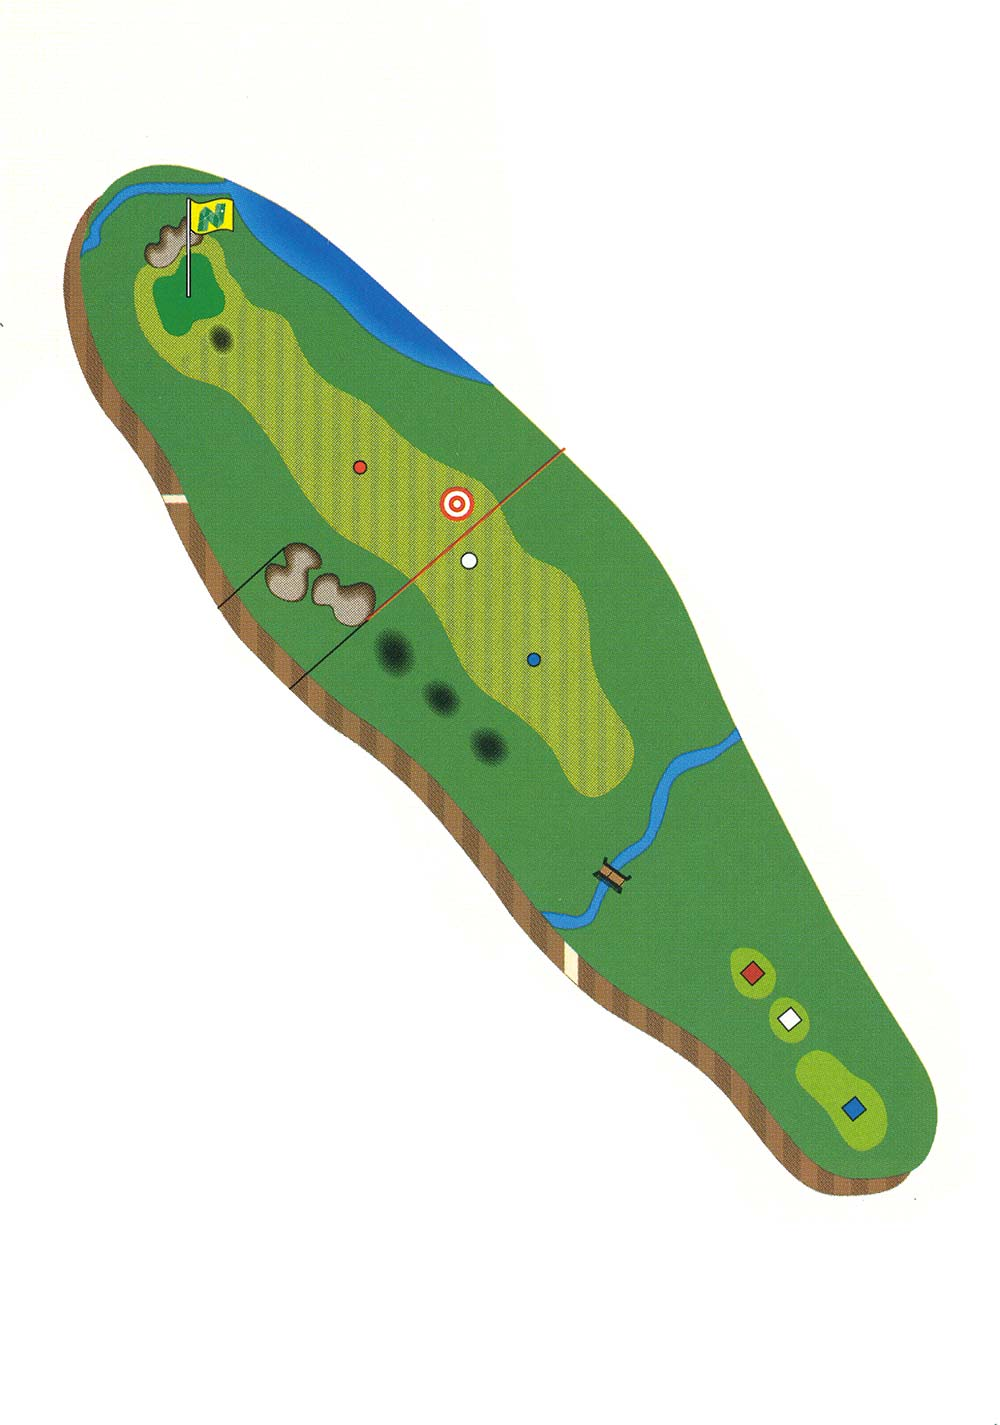 Course Description - Hole 2